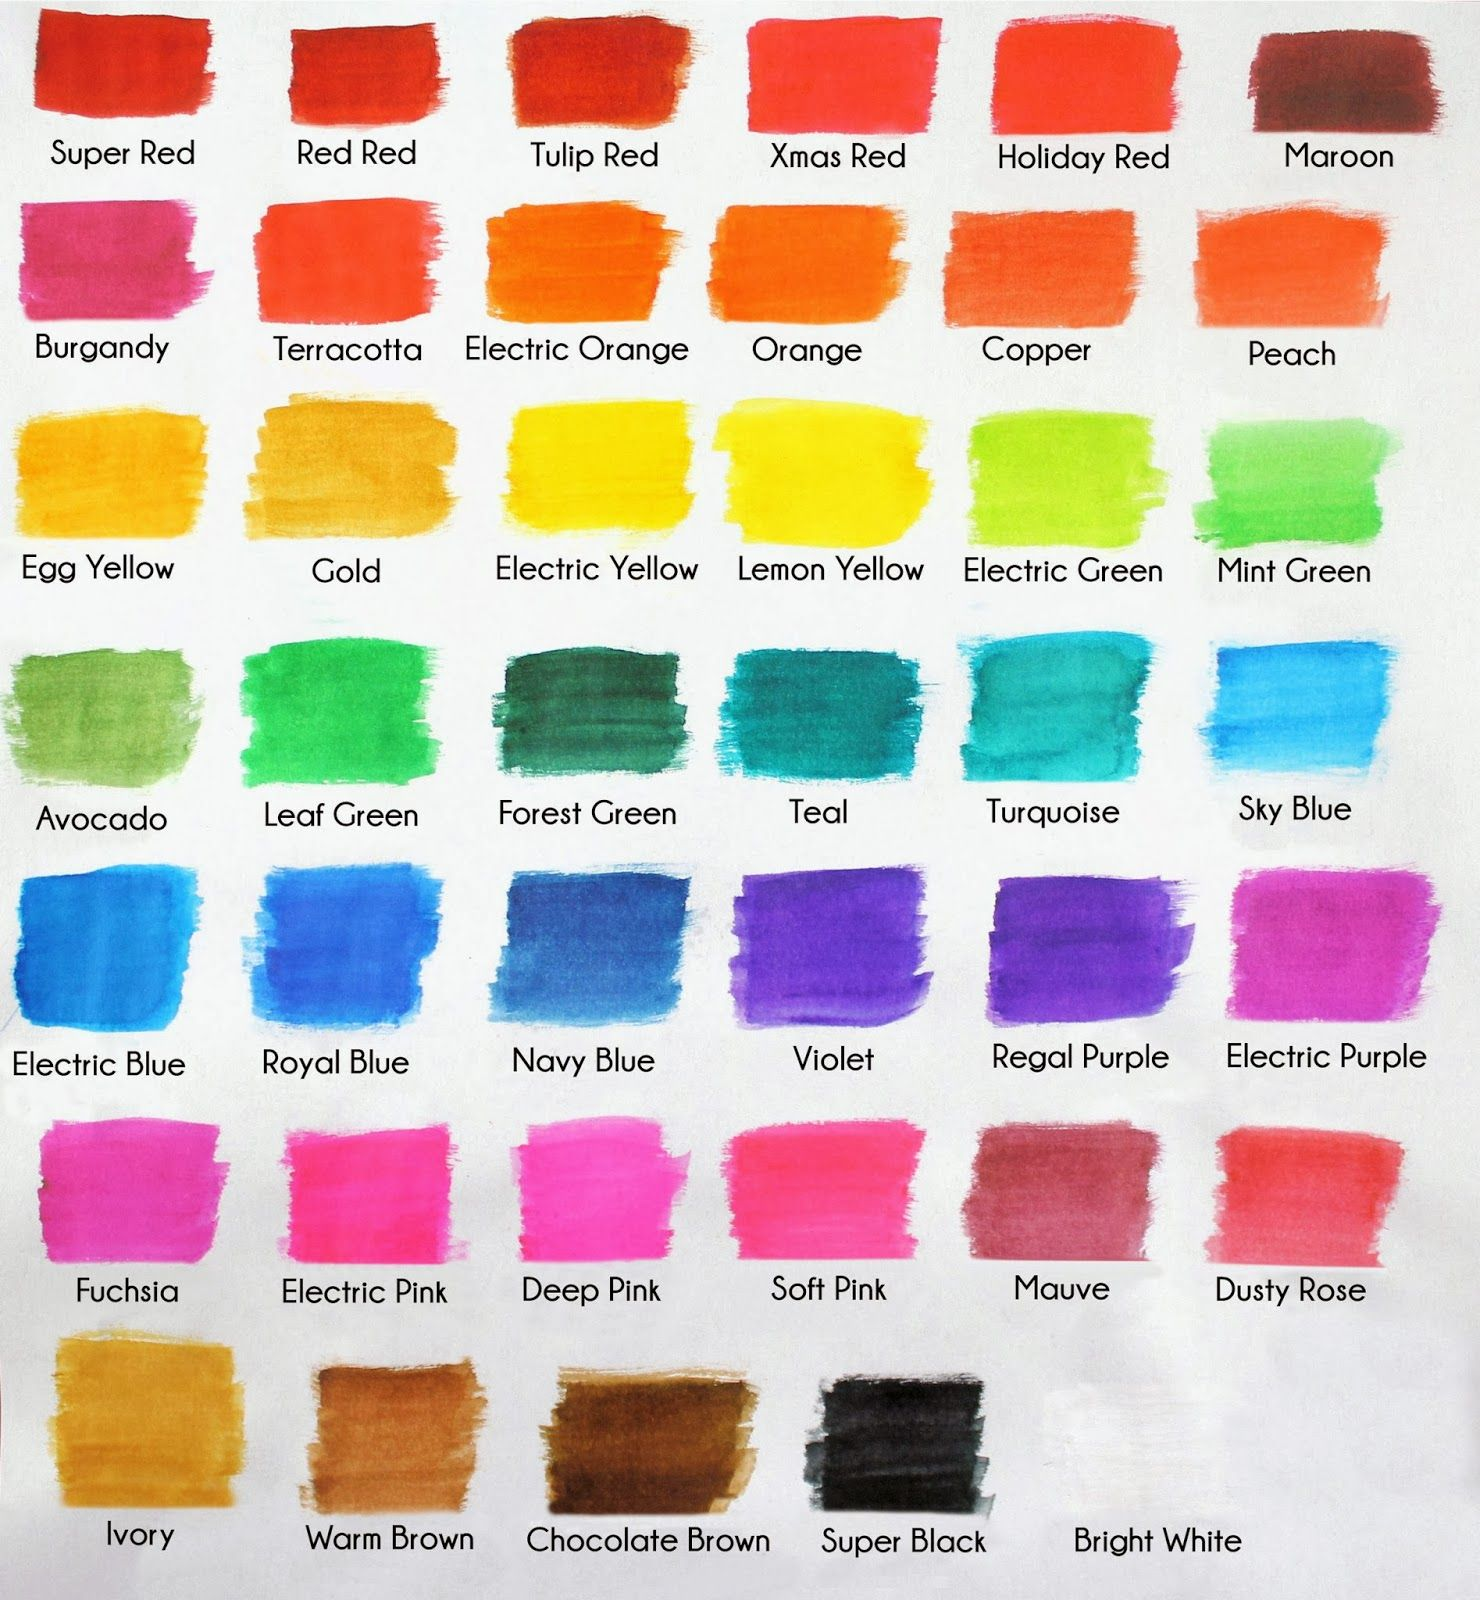 Americolor color swatch chart frosting colors food